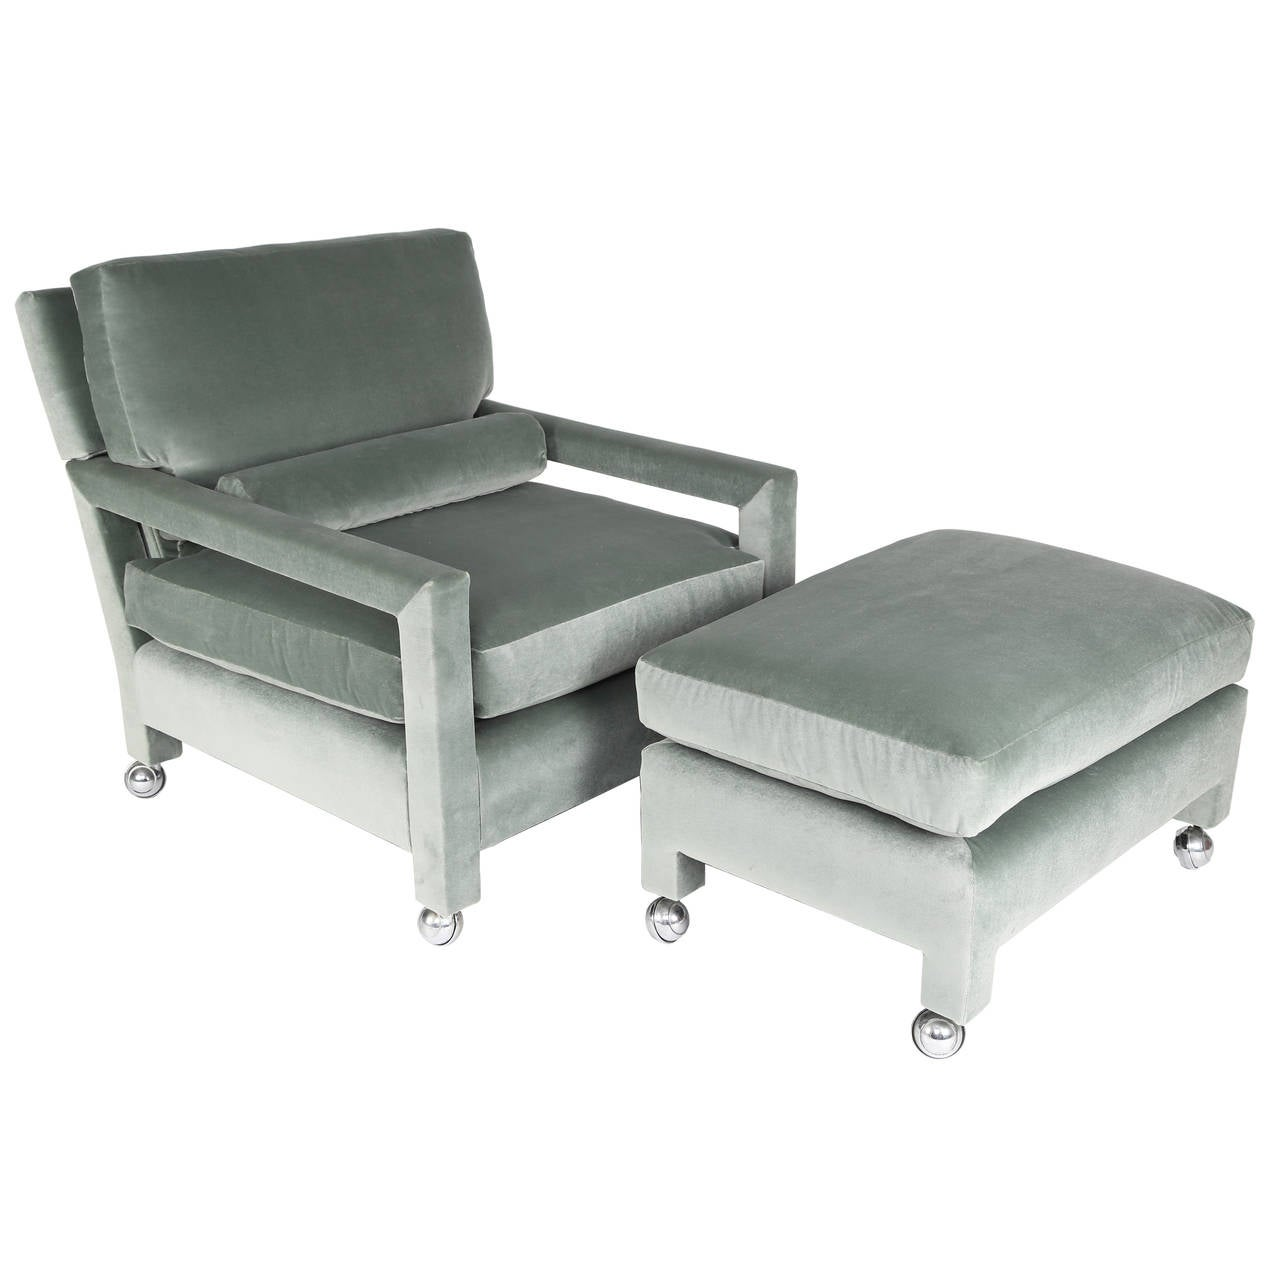 milo baughman reclining lounge chair and ottoman on casters at 1stdibs